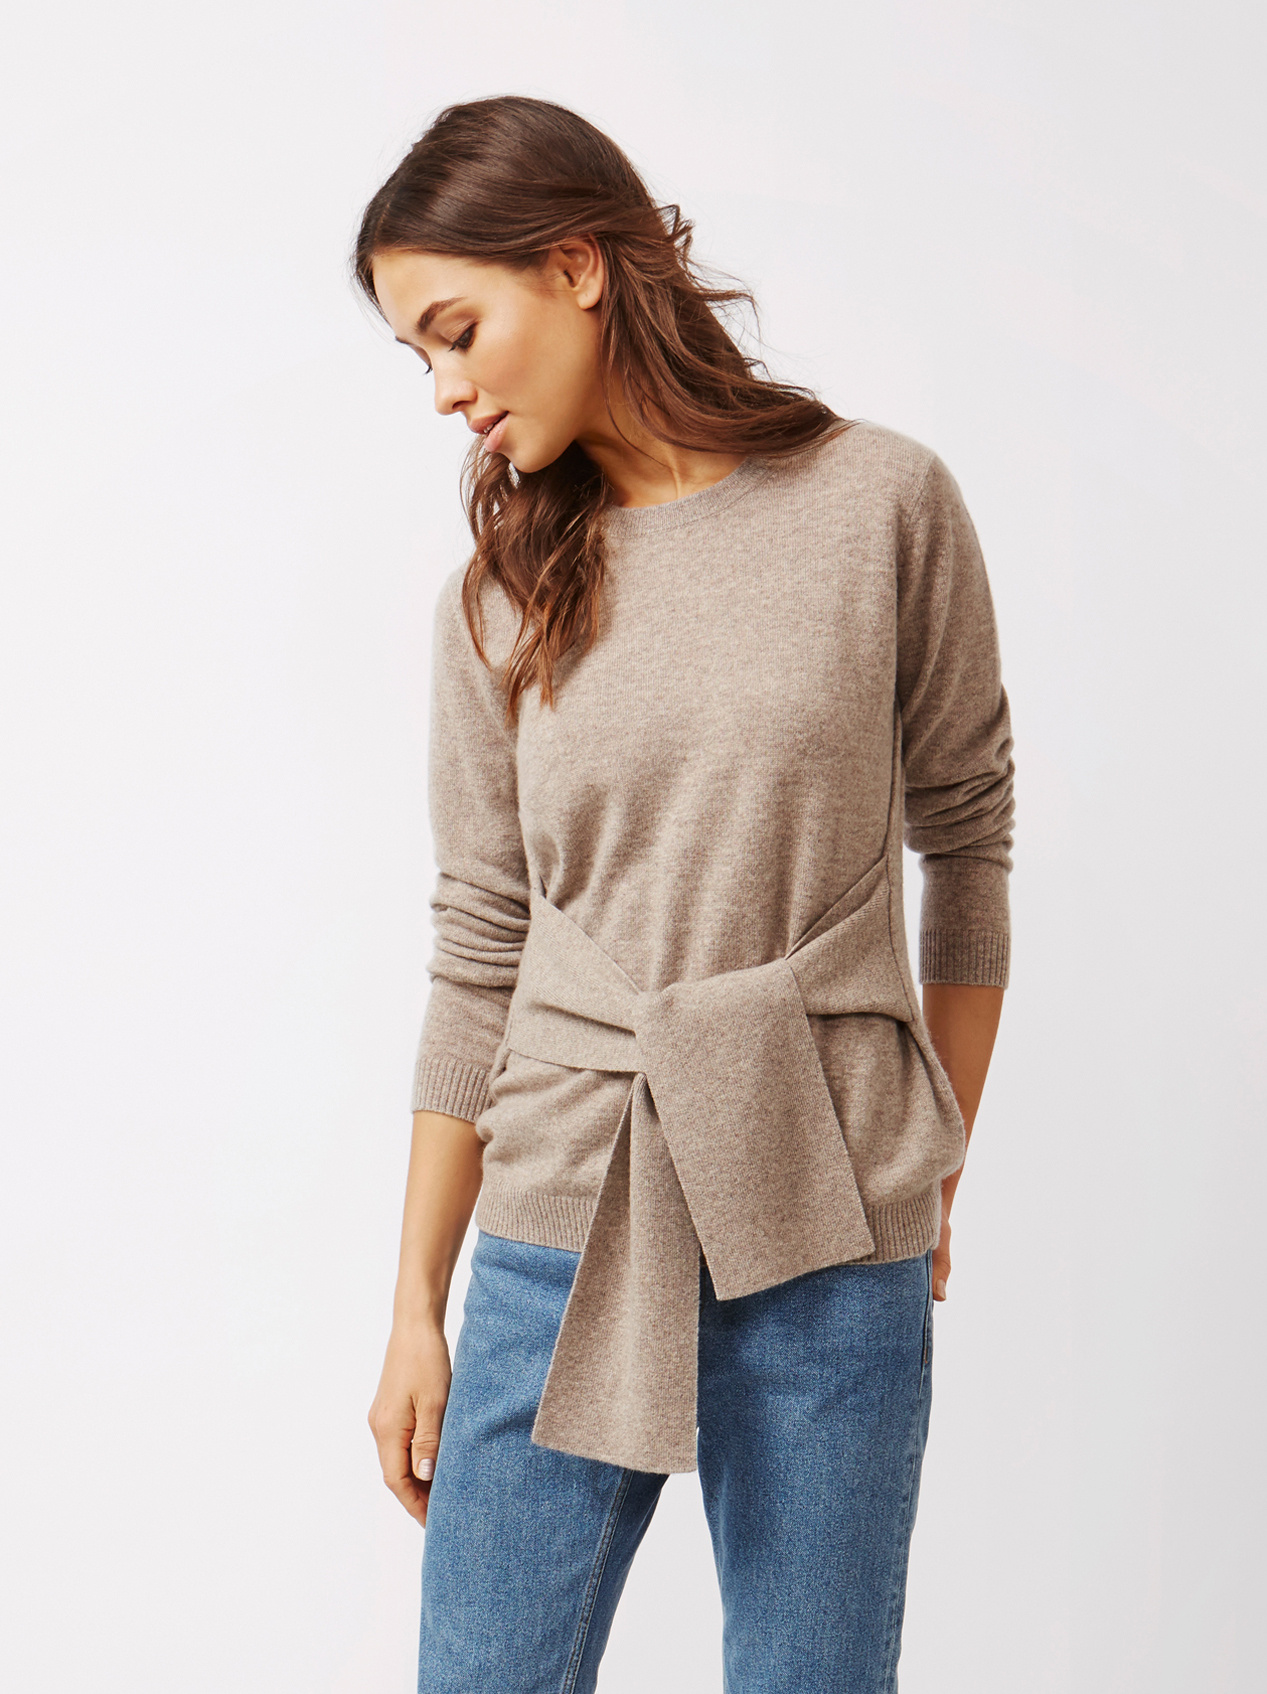 Soft Goat Women's Knot Sweater Taupe